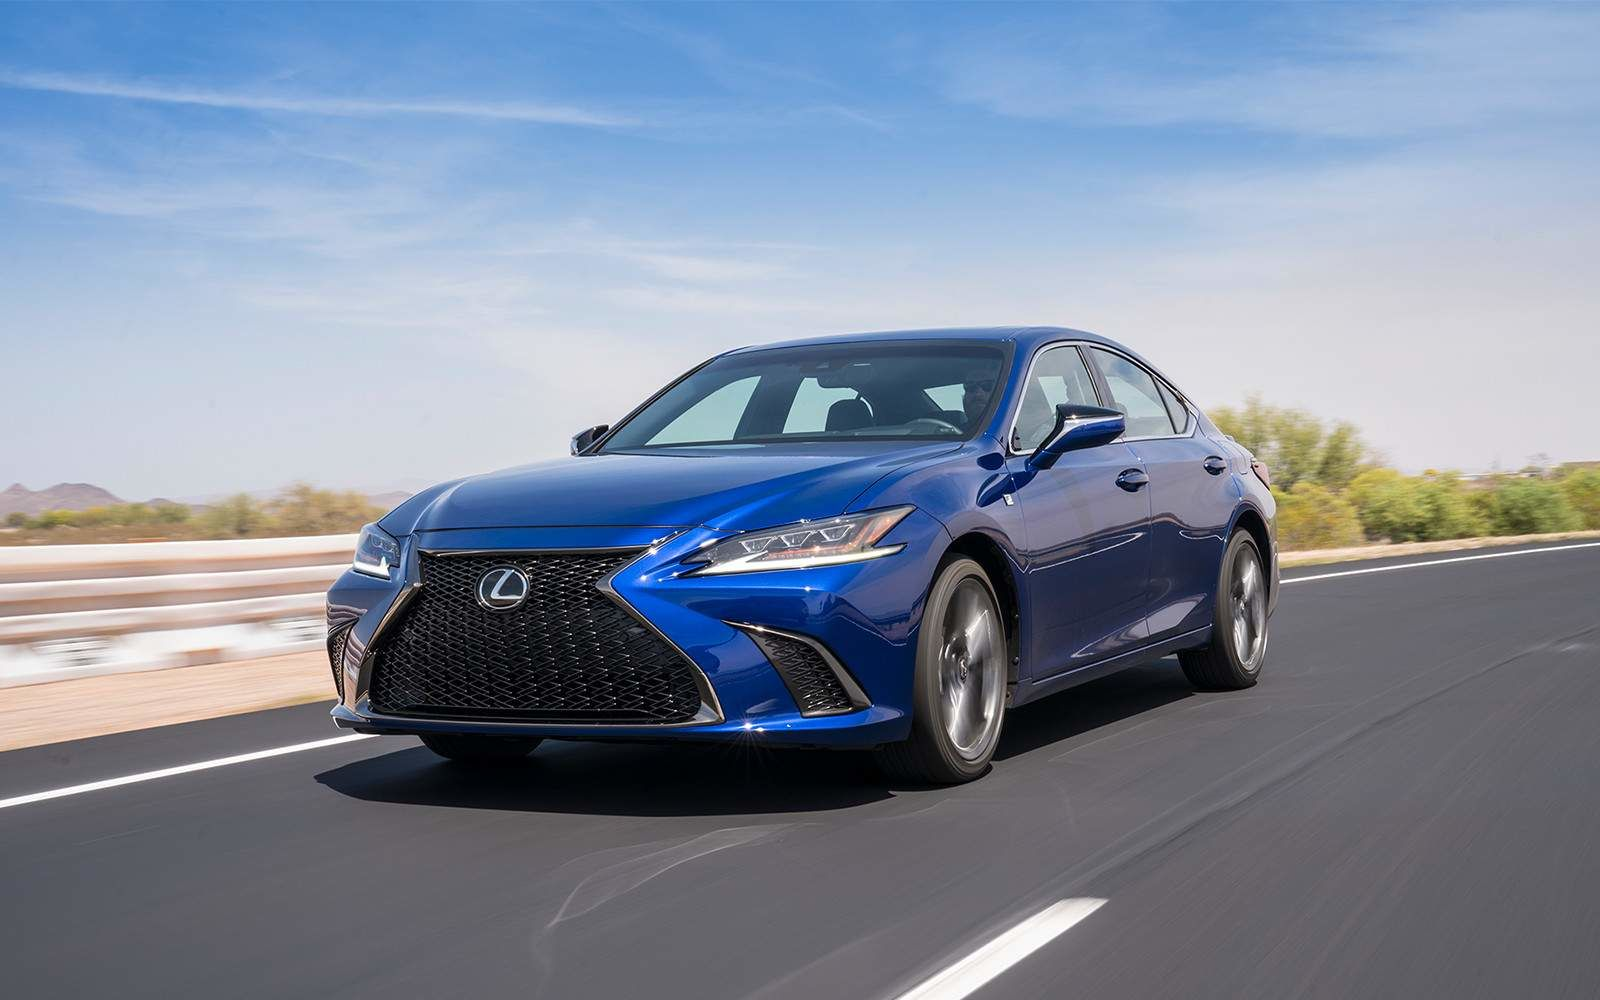 Lexus 2020 Es 350 Fsport Ultrasonic Blue Front L